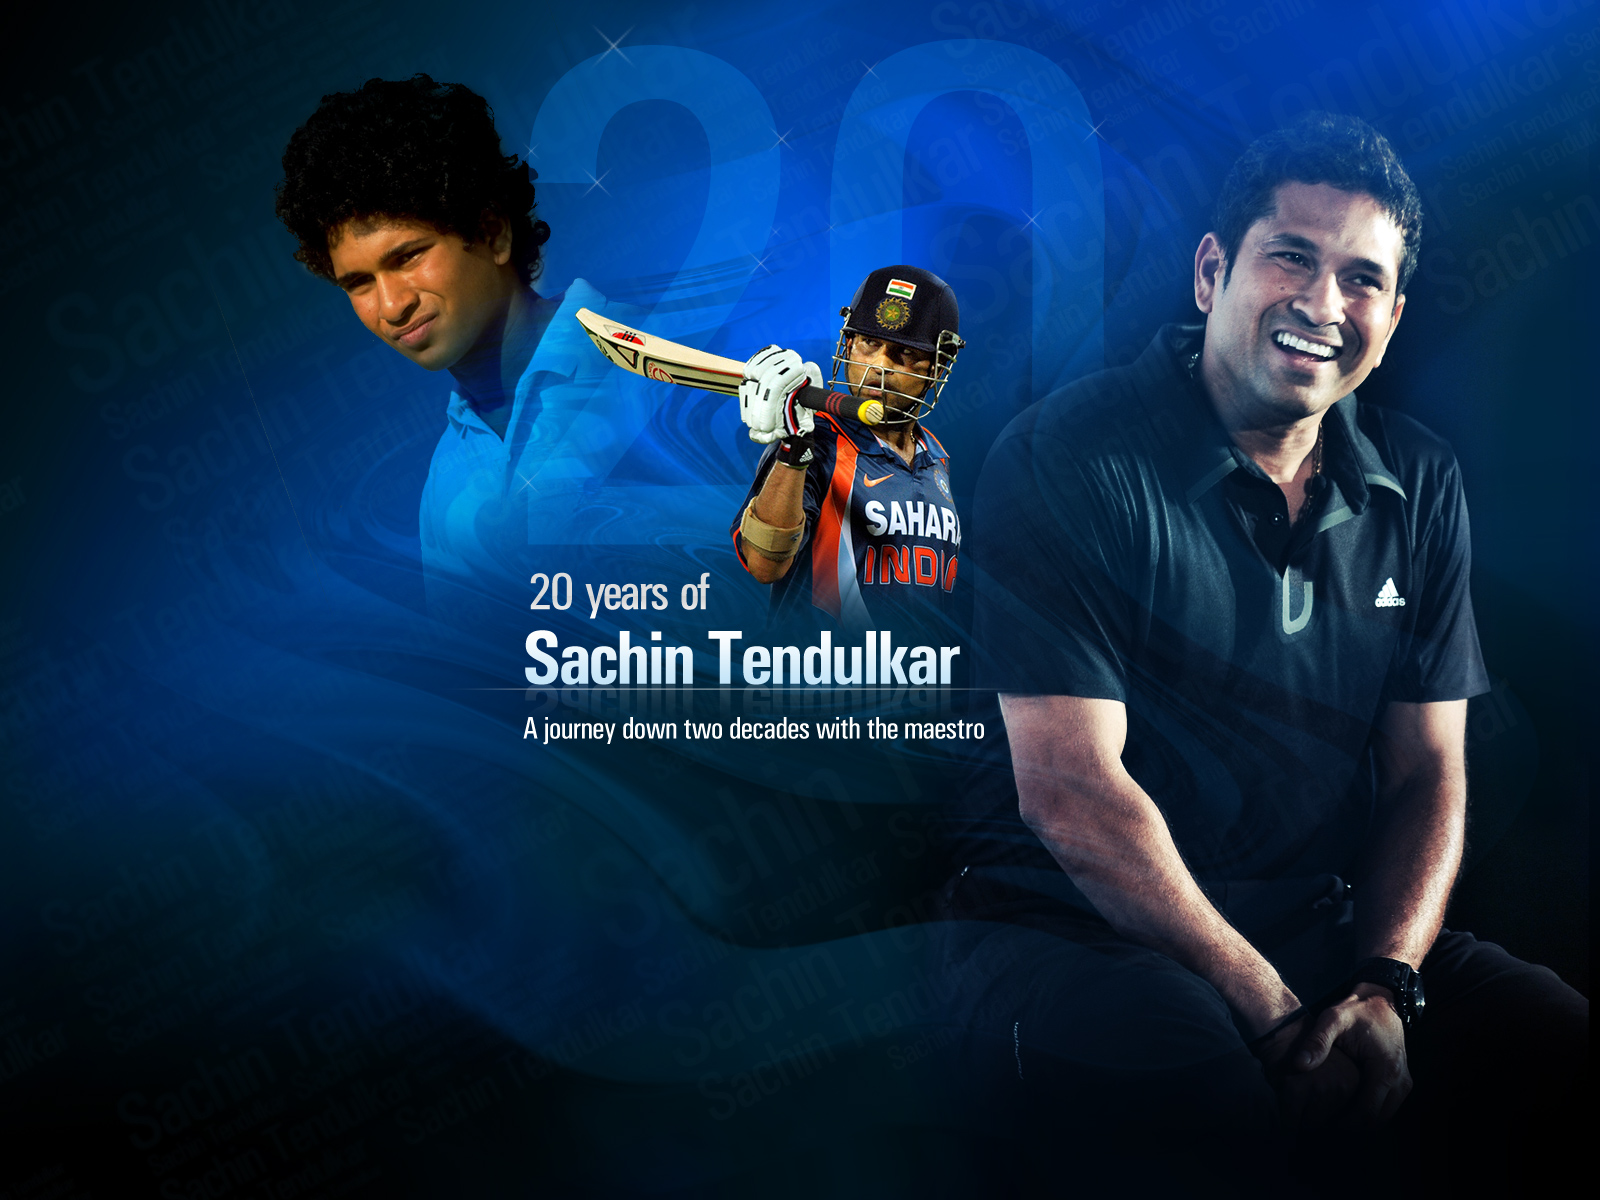 http://1.bp.blogspot.com/-PqPjsgZ1Q4I/UOgQzgZbR7I/AAAAAAAAAz4/1bb-L55F3AI/s1600/last+to+and+sachin+tendulkar+hd+wallpaper.jpg